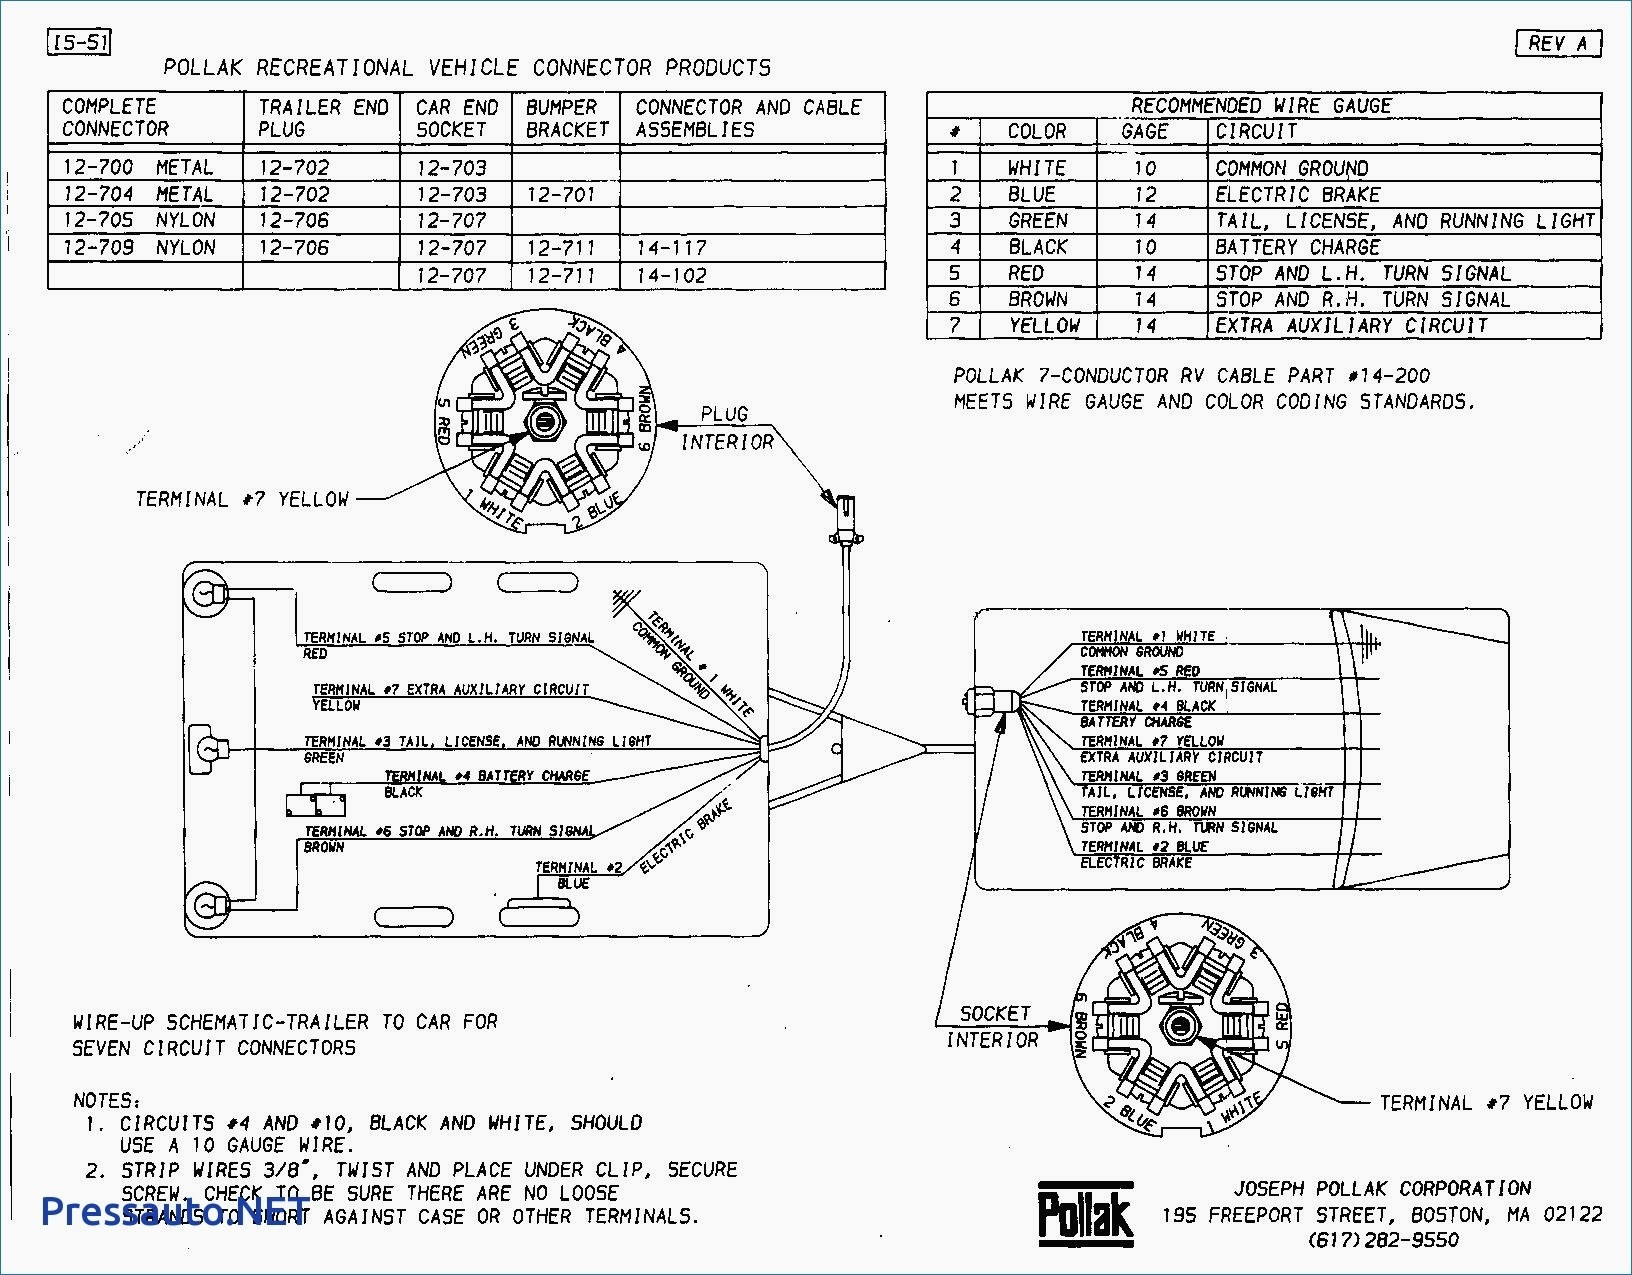 6 wire trailer plug editing diagram 3 wire trailer plug diagrams